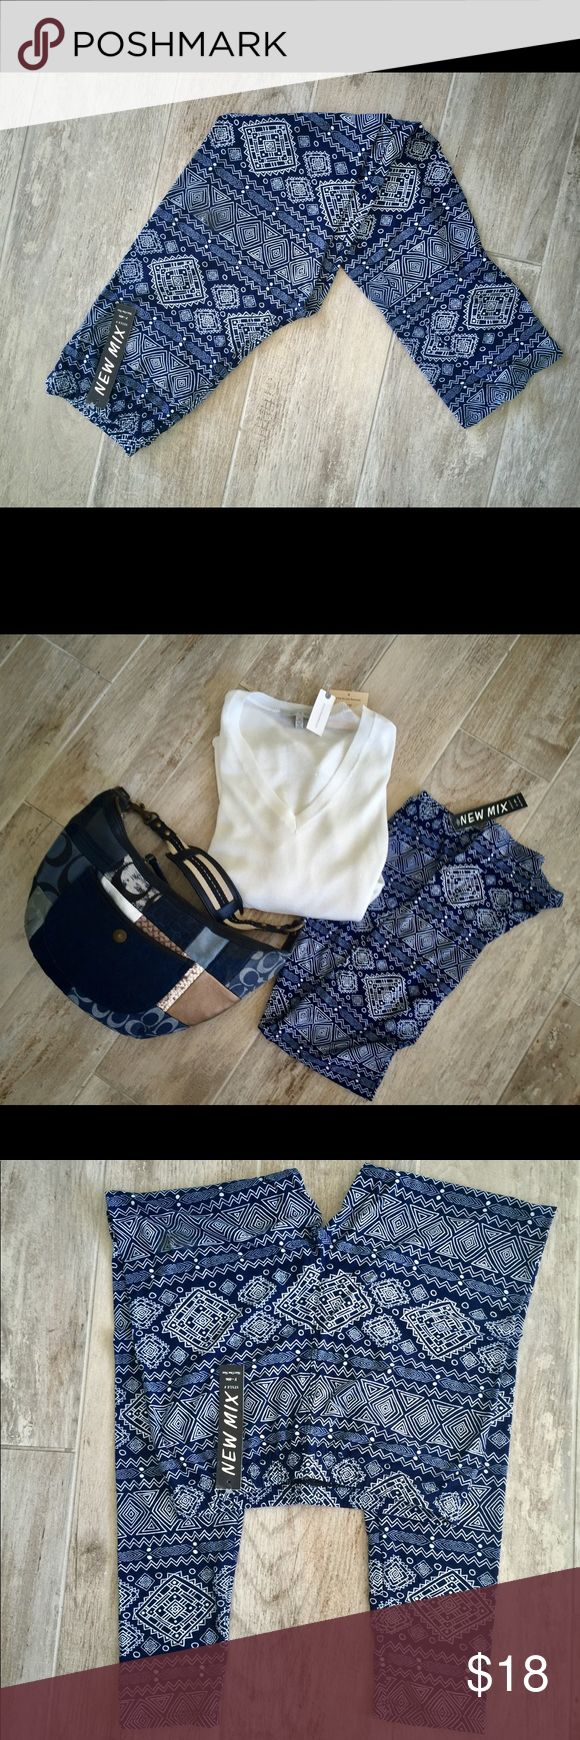 Blue and White Print Leggings Wardrobe staple, blue and white leggings look great with anything from a chunky white sweater to a Blouse or tank top and jacket with boots Pants Leggings